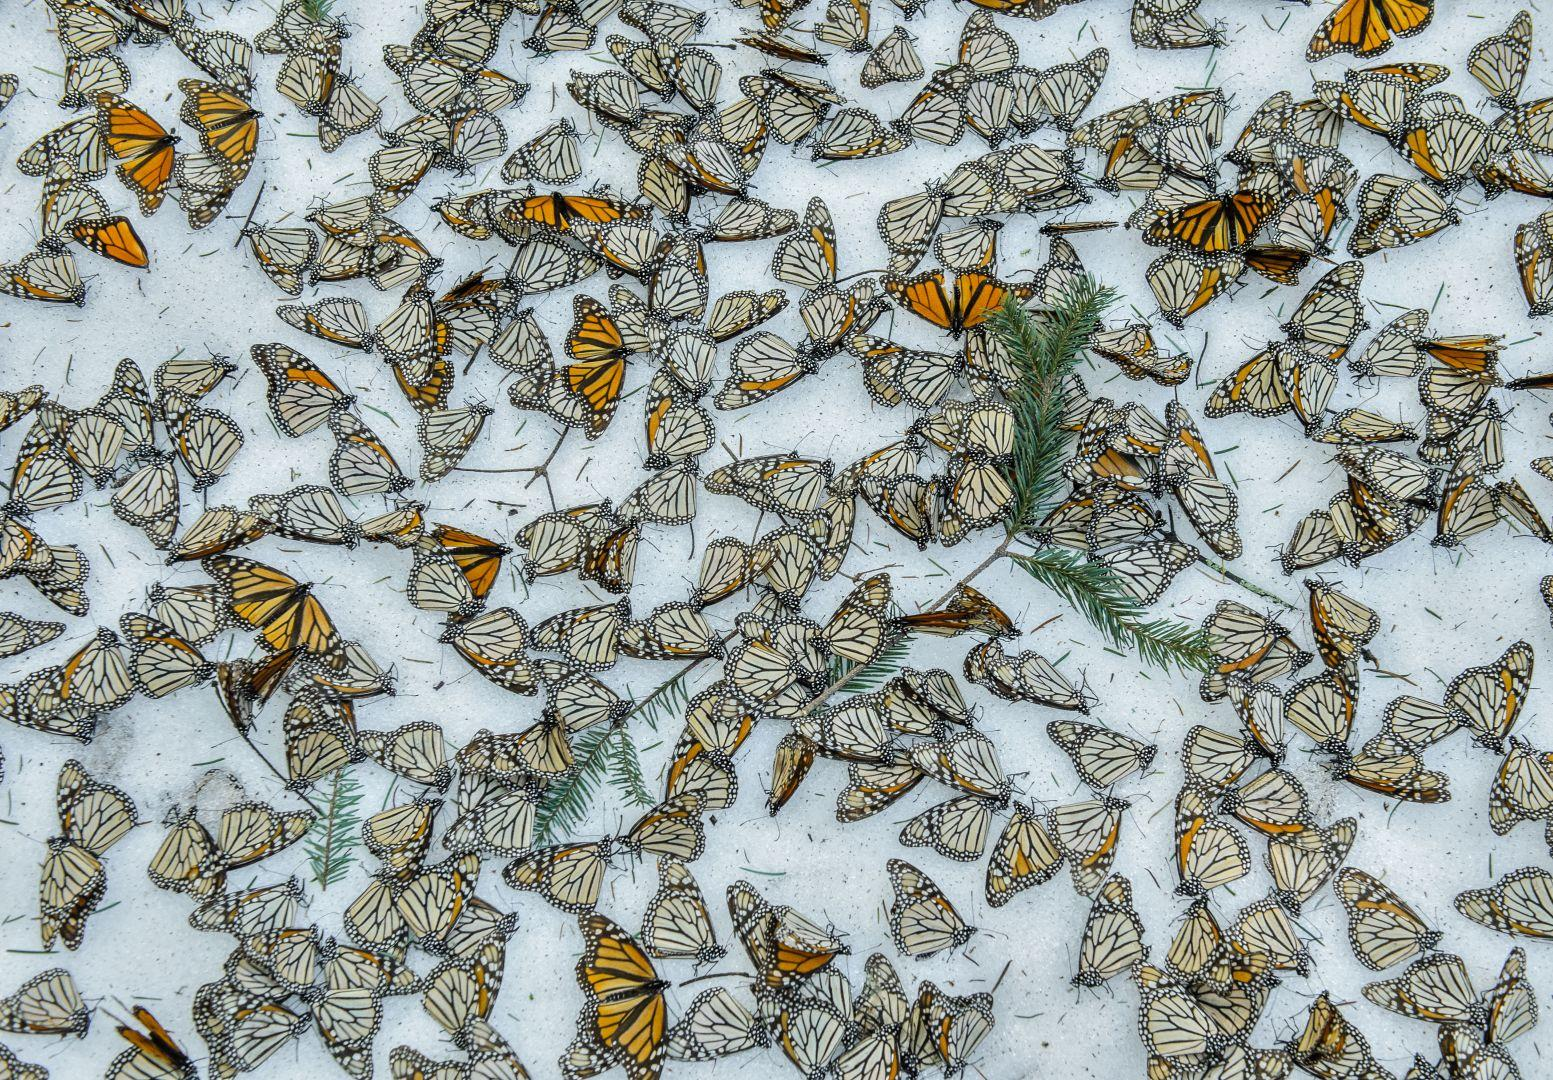 Monarchs in the Snow, Jaime Rojo, Spain, The World Press Photo Contest